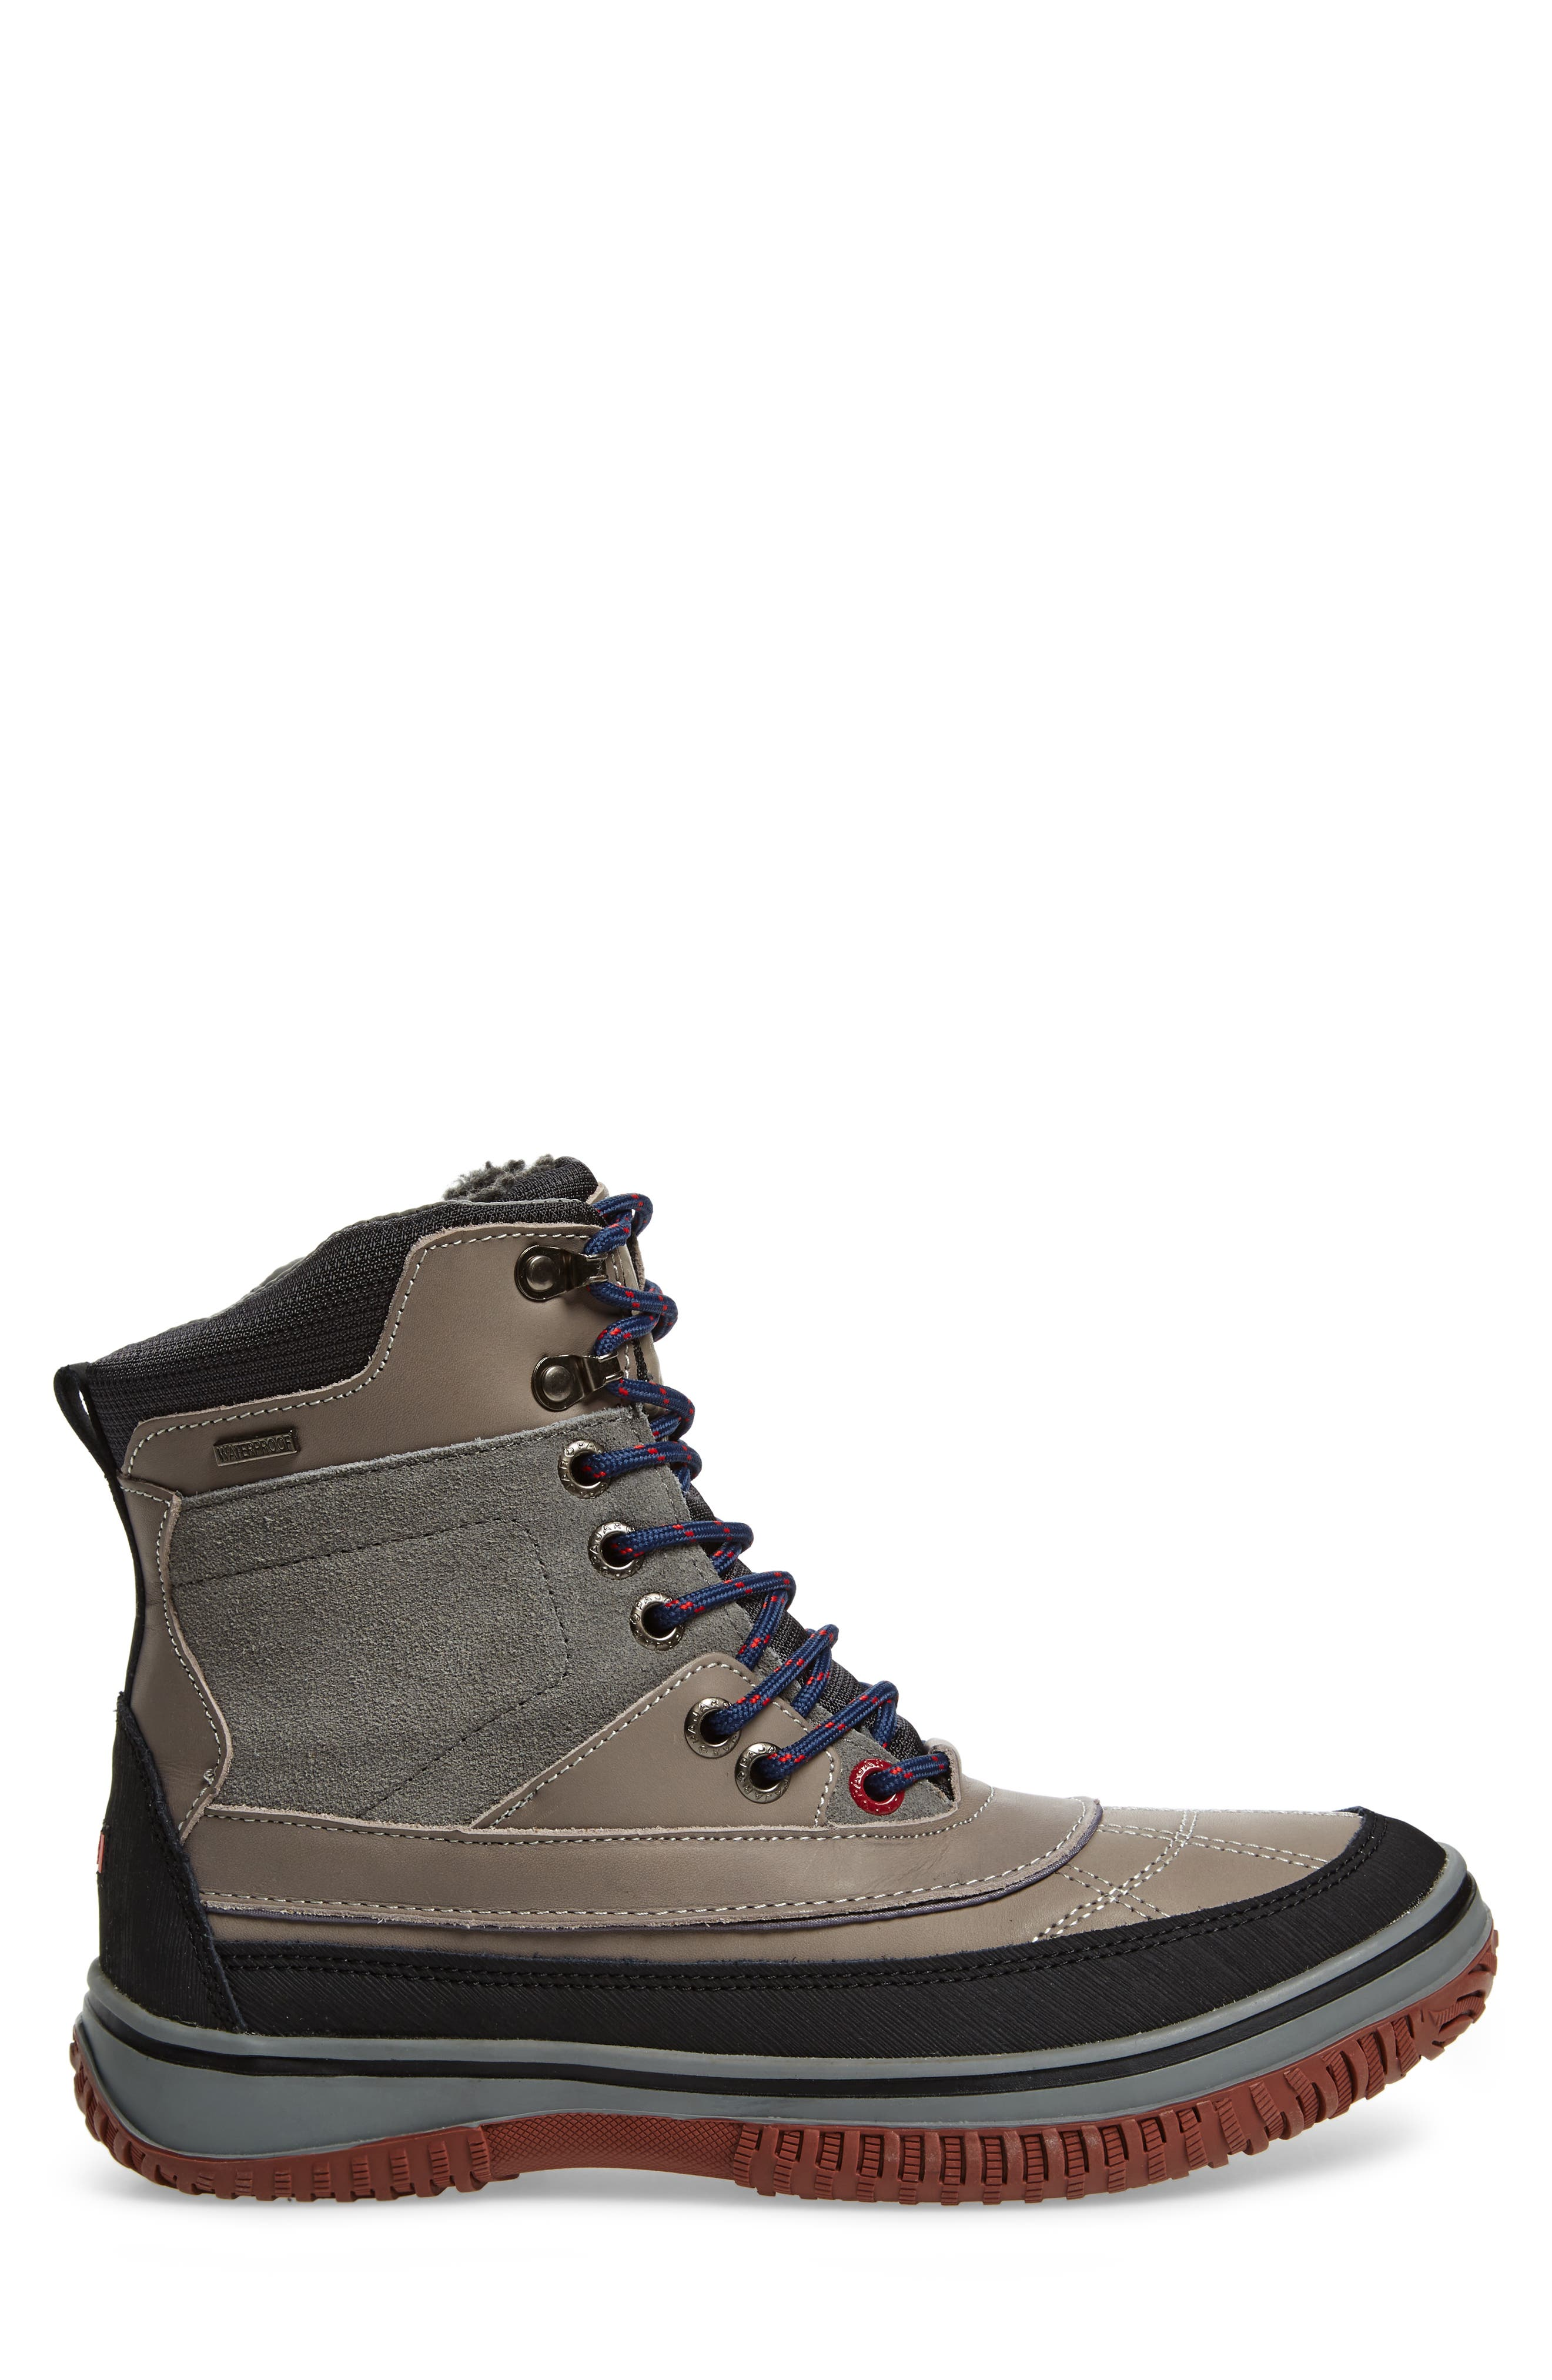 Gaspar Waterproof Winter Boot,                             Alternate thumbnail 3, color,                             GREY LEATHER